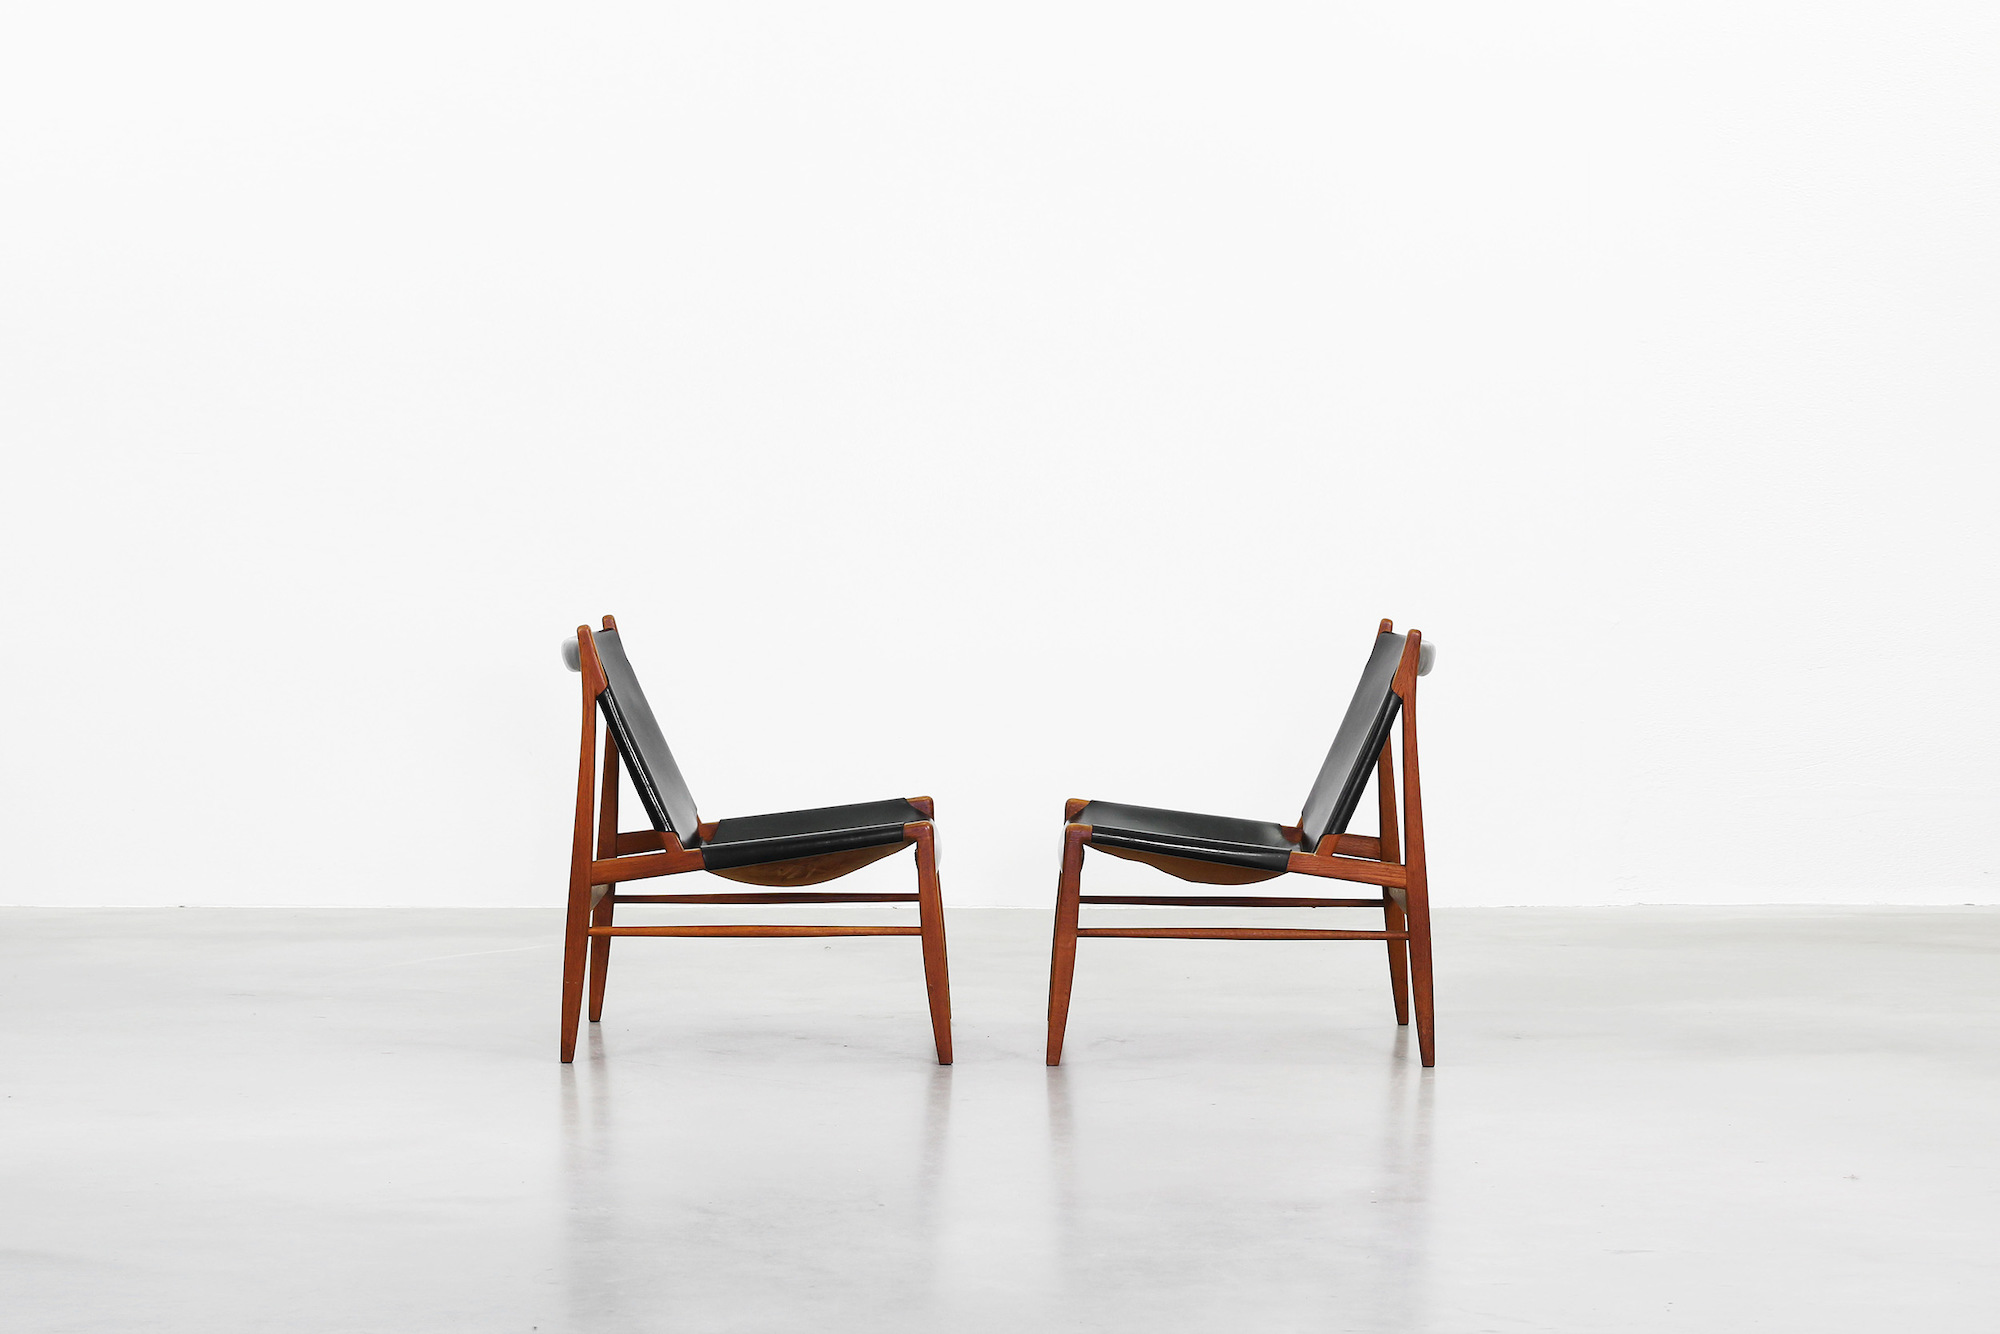 Galerie Bachmann • Hunting Chairs by Franz Xaver Lutz for WK Möbel